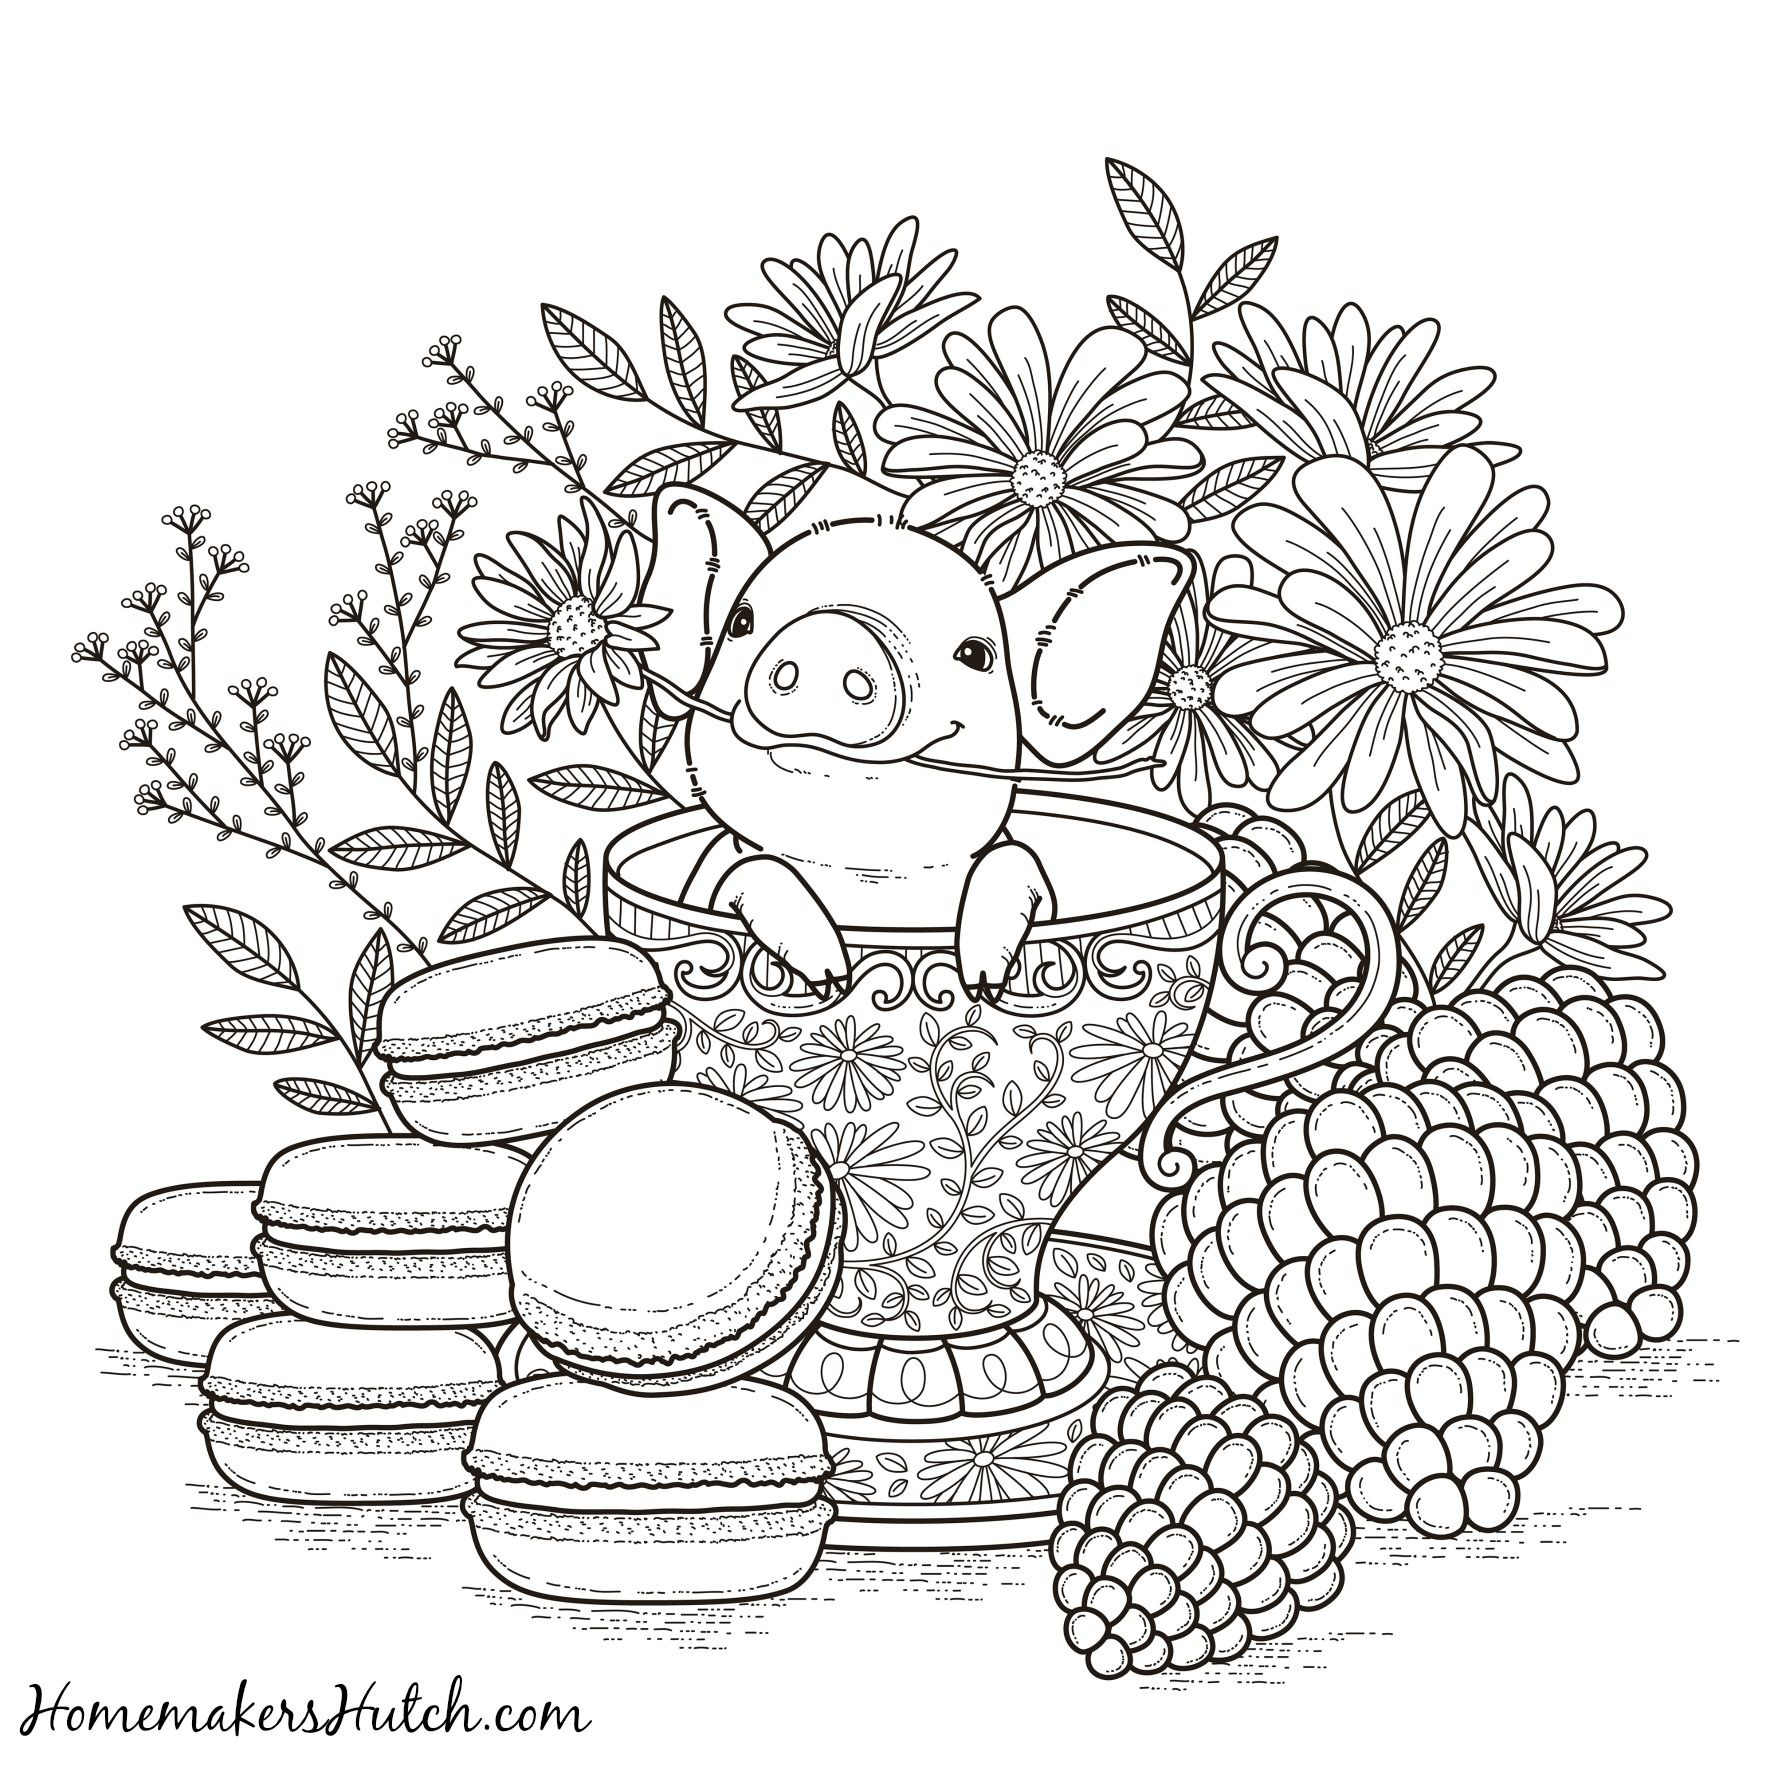 coloring pages of pigs # 36